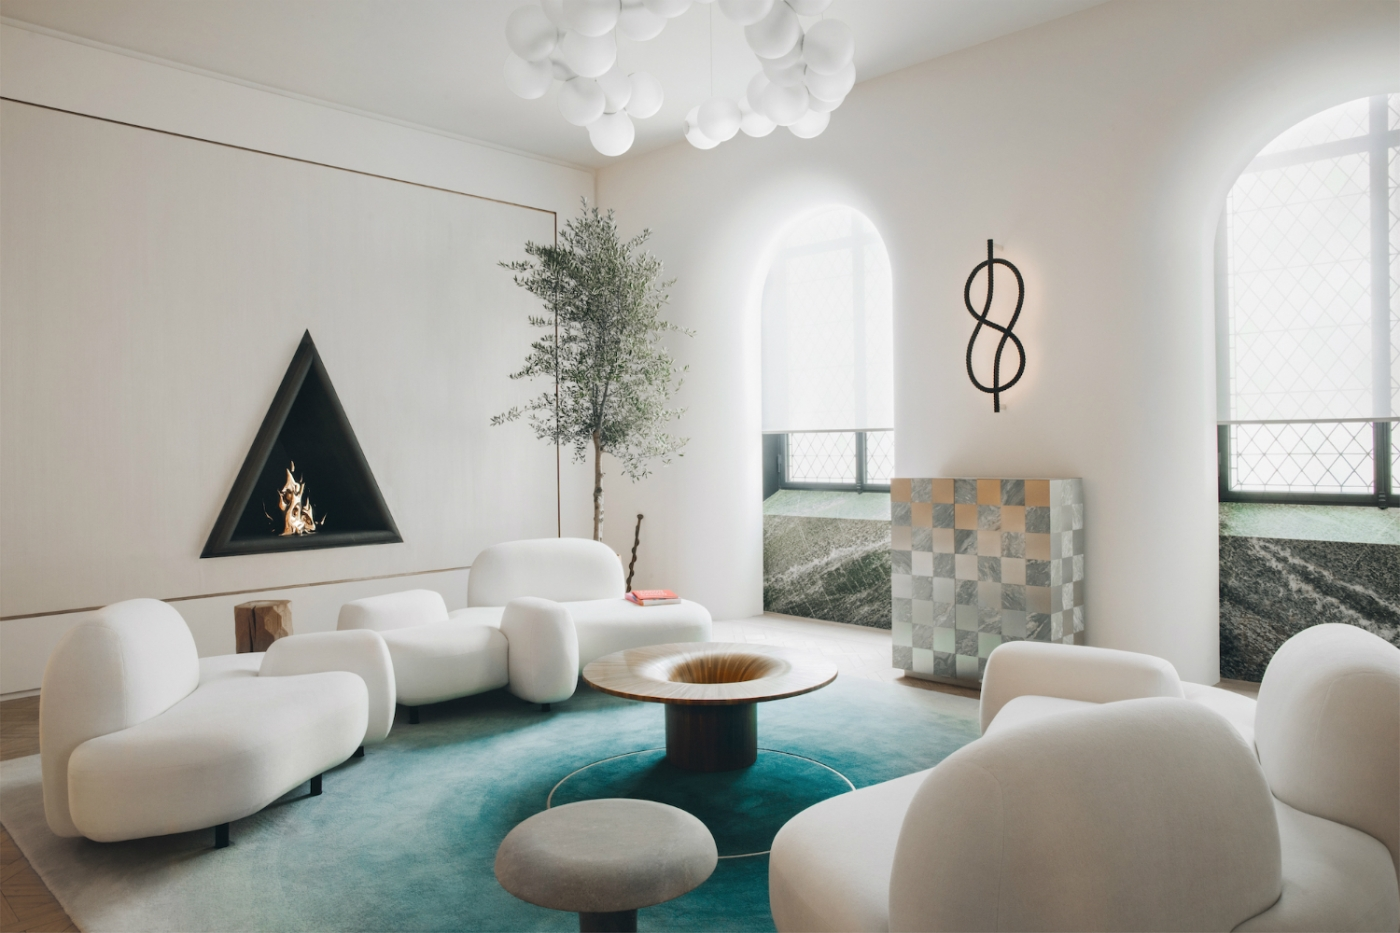 french interior designers Maison et Objet 2020: Top Interiors by French Interior Designers Maison et Objet 2020 Top Living Rooms by French Designers feature picture 1400x933